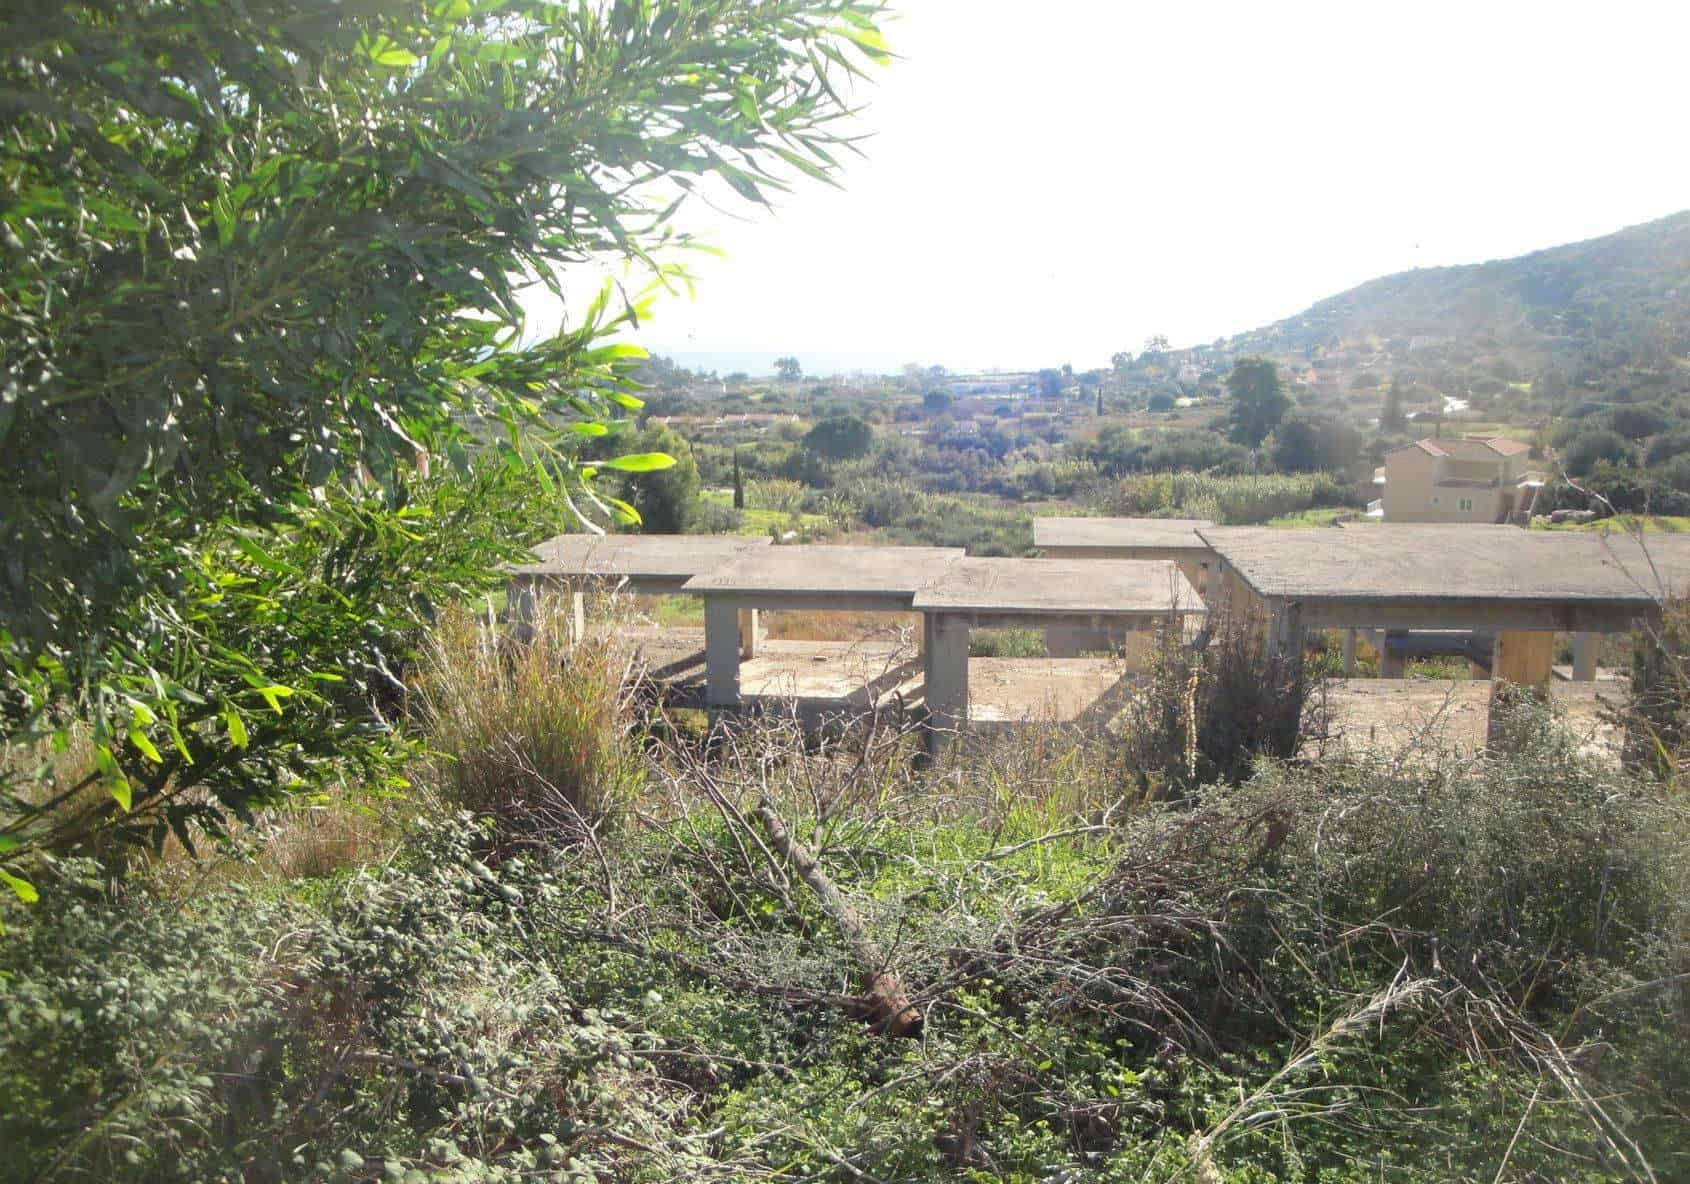 Commercial property for sale in Katelios